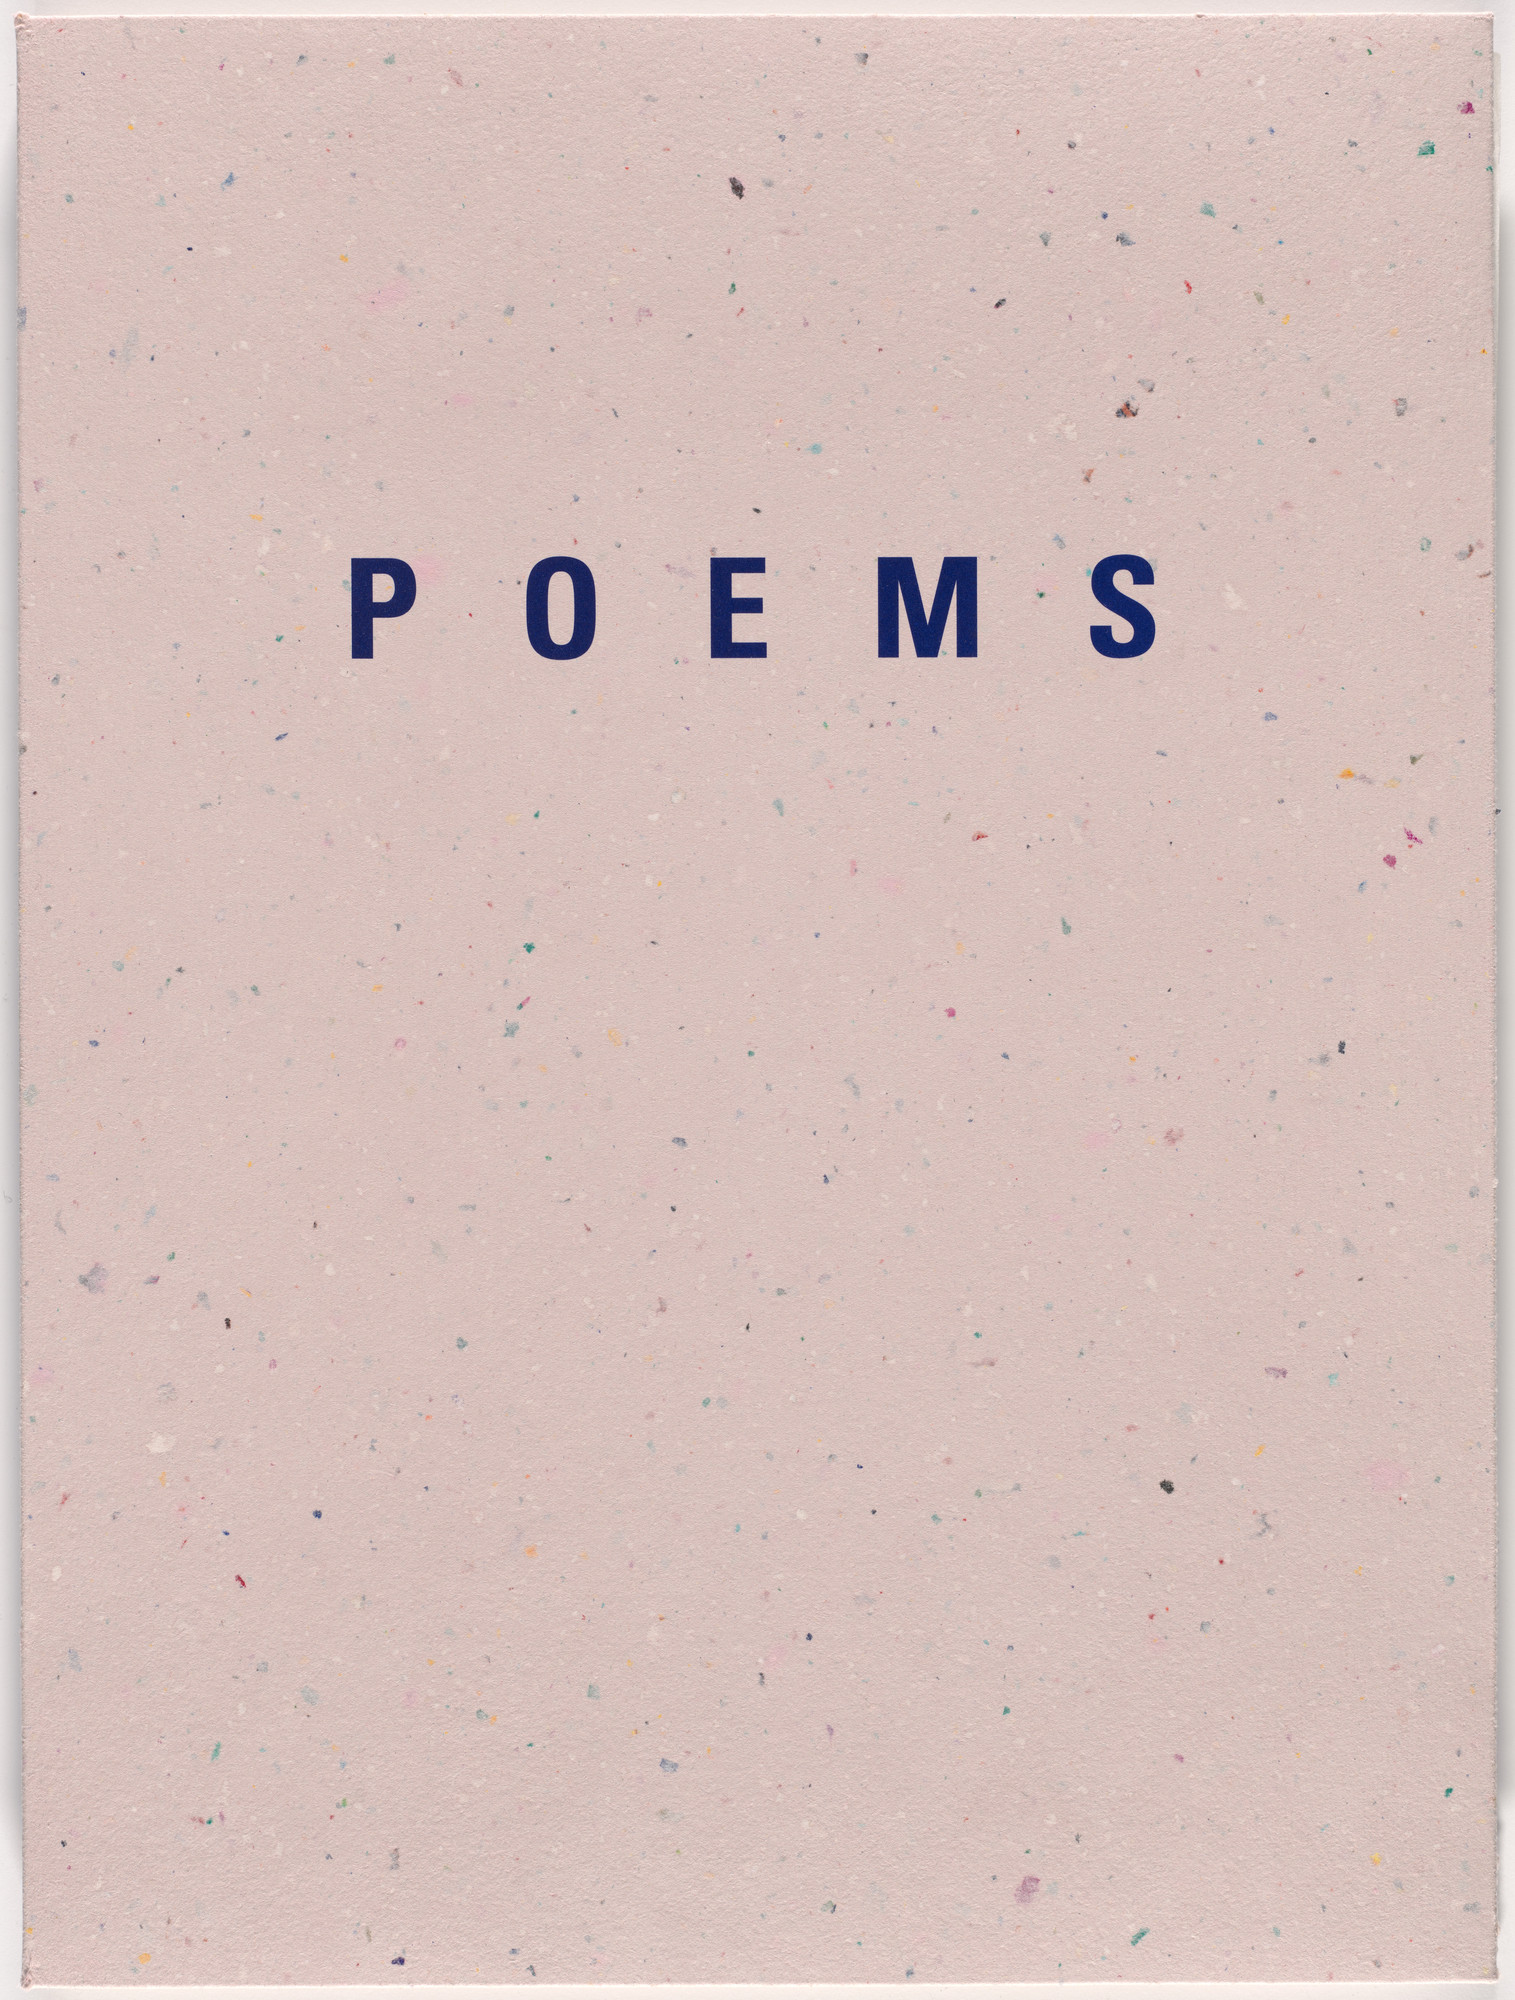 Joan Mitchell. Poems. 1992